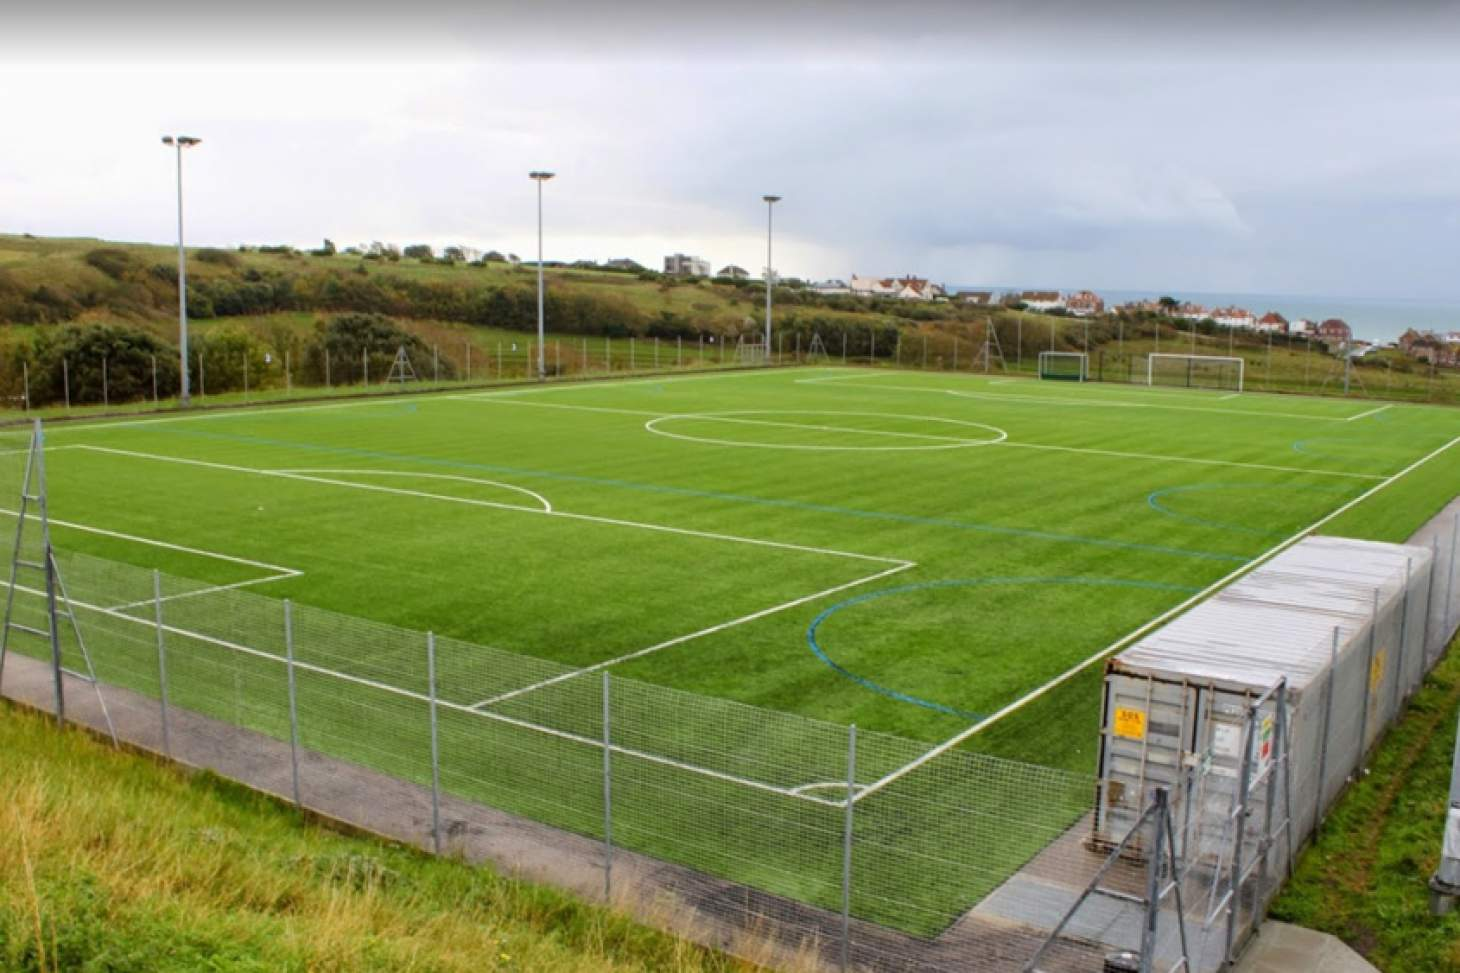 Stanley Deason Leisure Centre 5 a side | 3G Astroturf football pitch